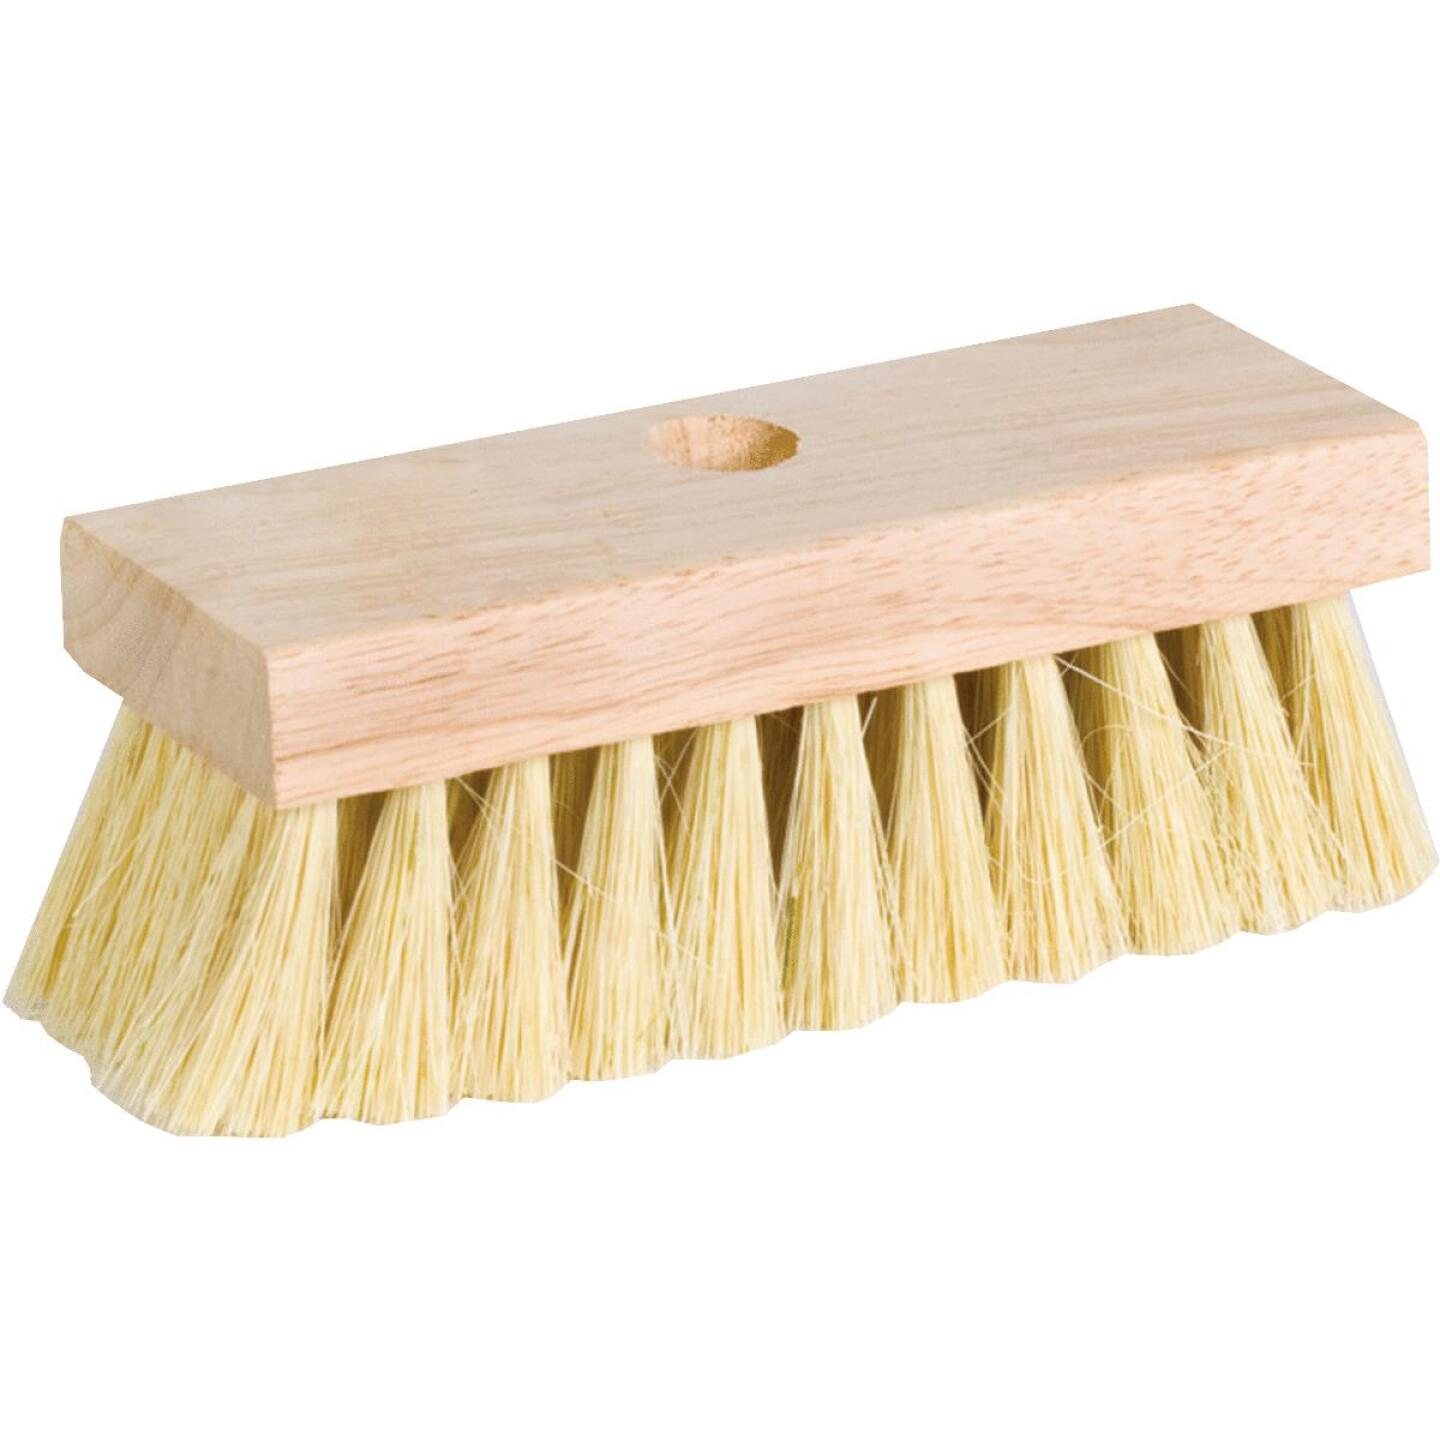 DQB Erie Roof 7 In. x 2 In. Tapered Handle Roof Brush Image 1